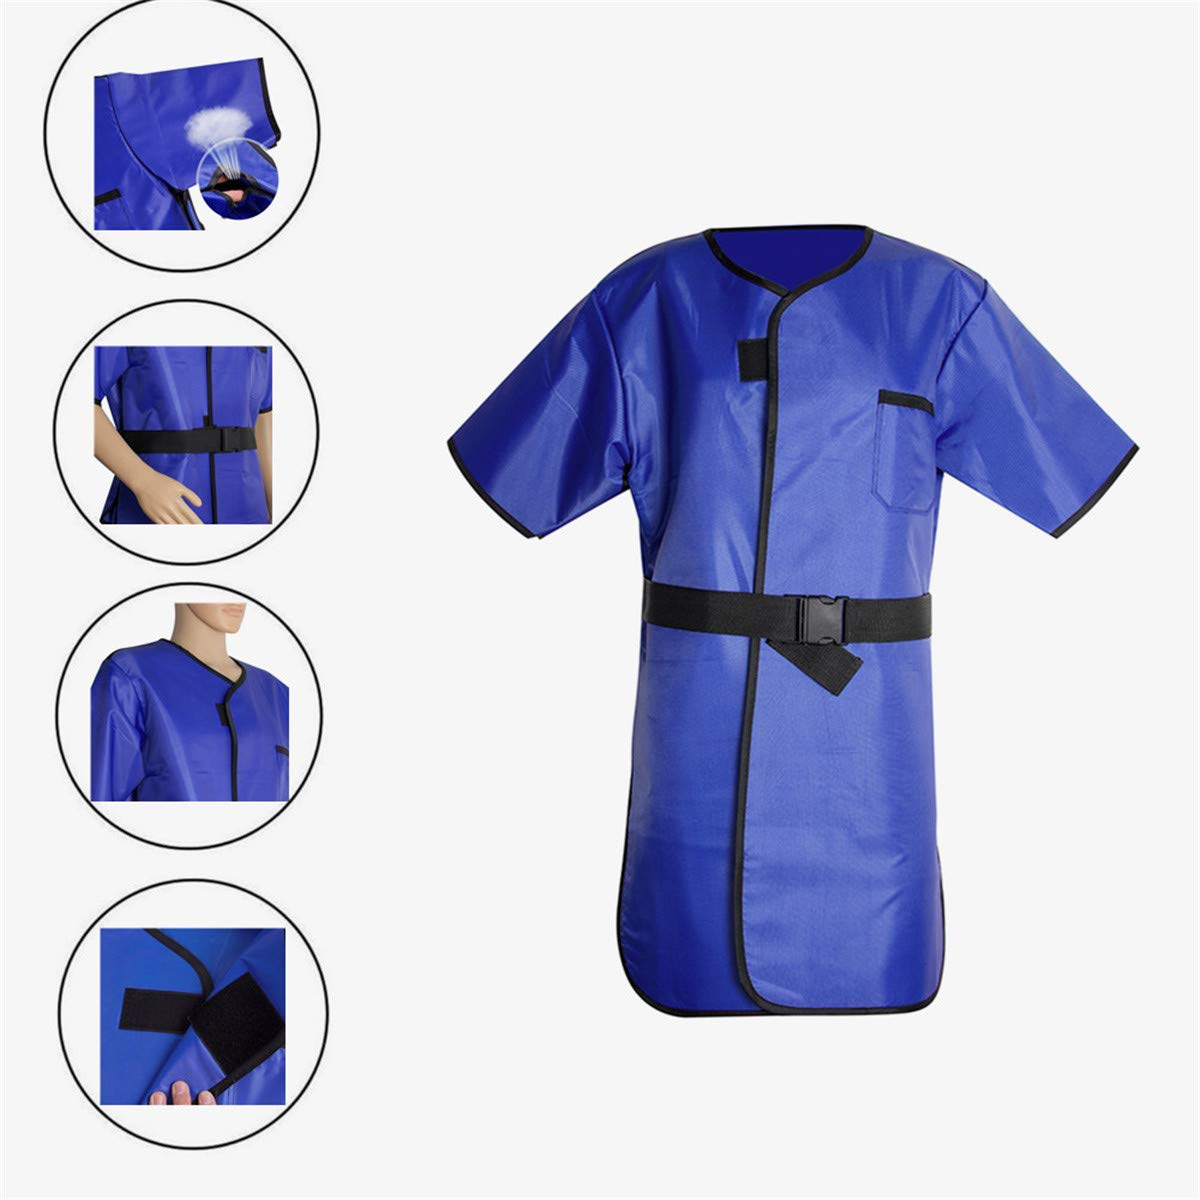 X-Ray Protection Apron,Fencia Flexible X-Ray Protective Cloth Lead Radiation Protection Apron Gel Coat 0.35mmpb Blue by Fencia (Image #2)